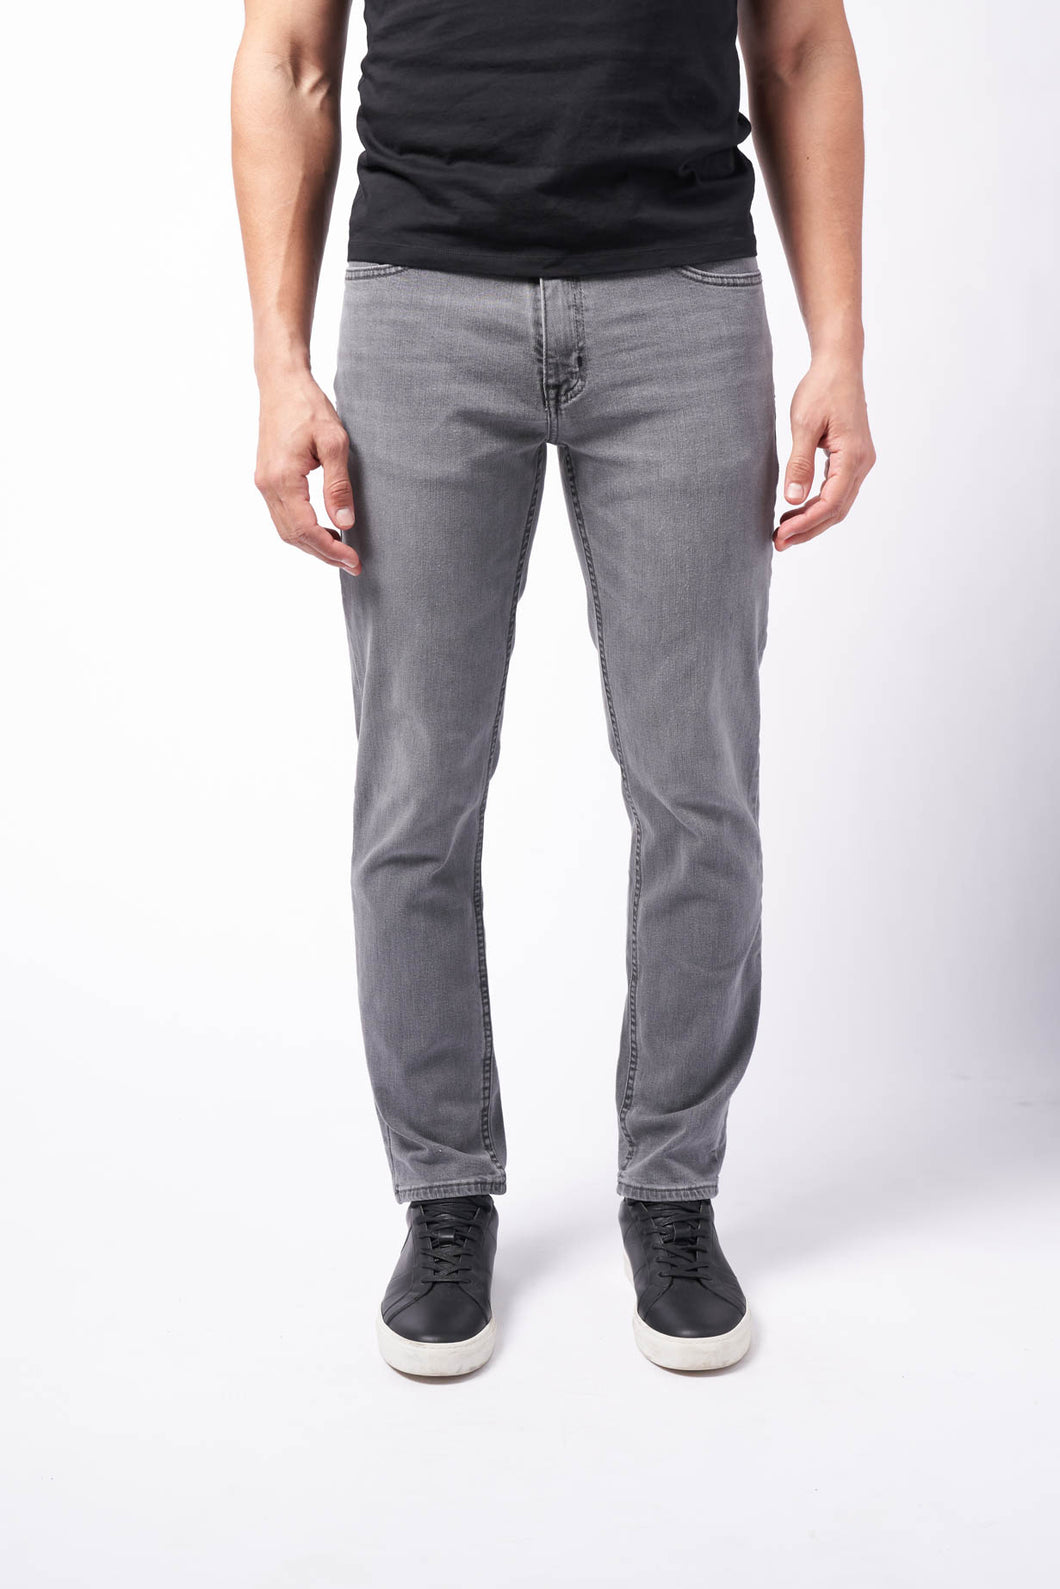 Athletic Fit Men's Jean - Rowan Wash